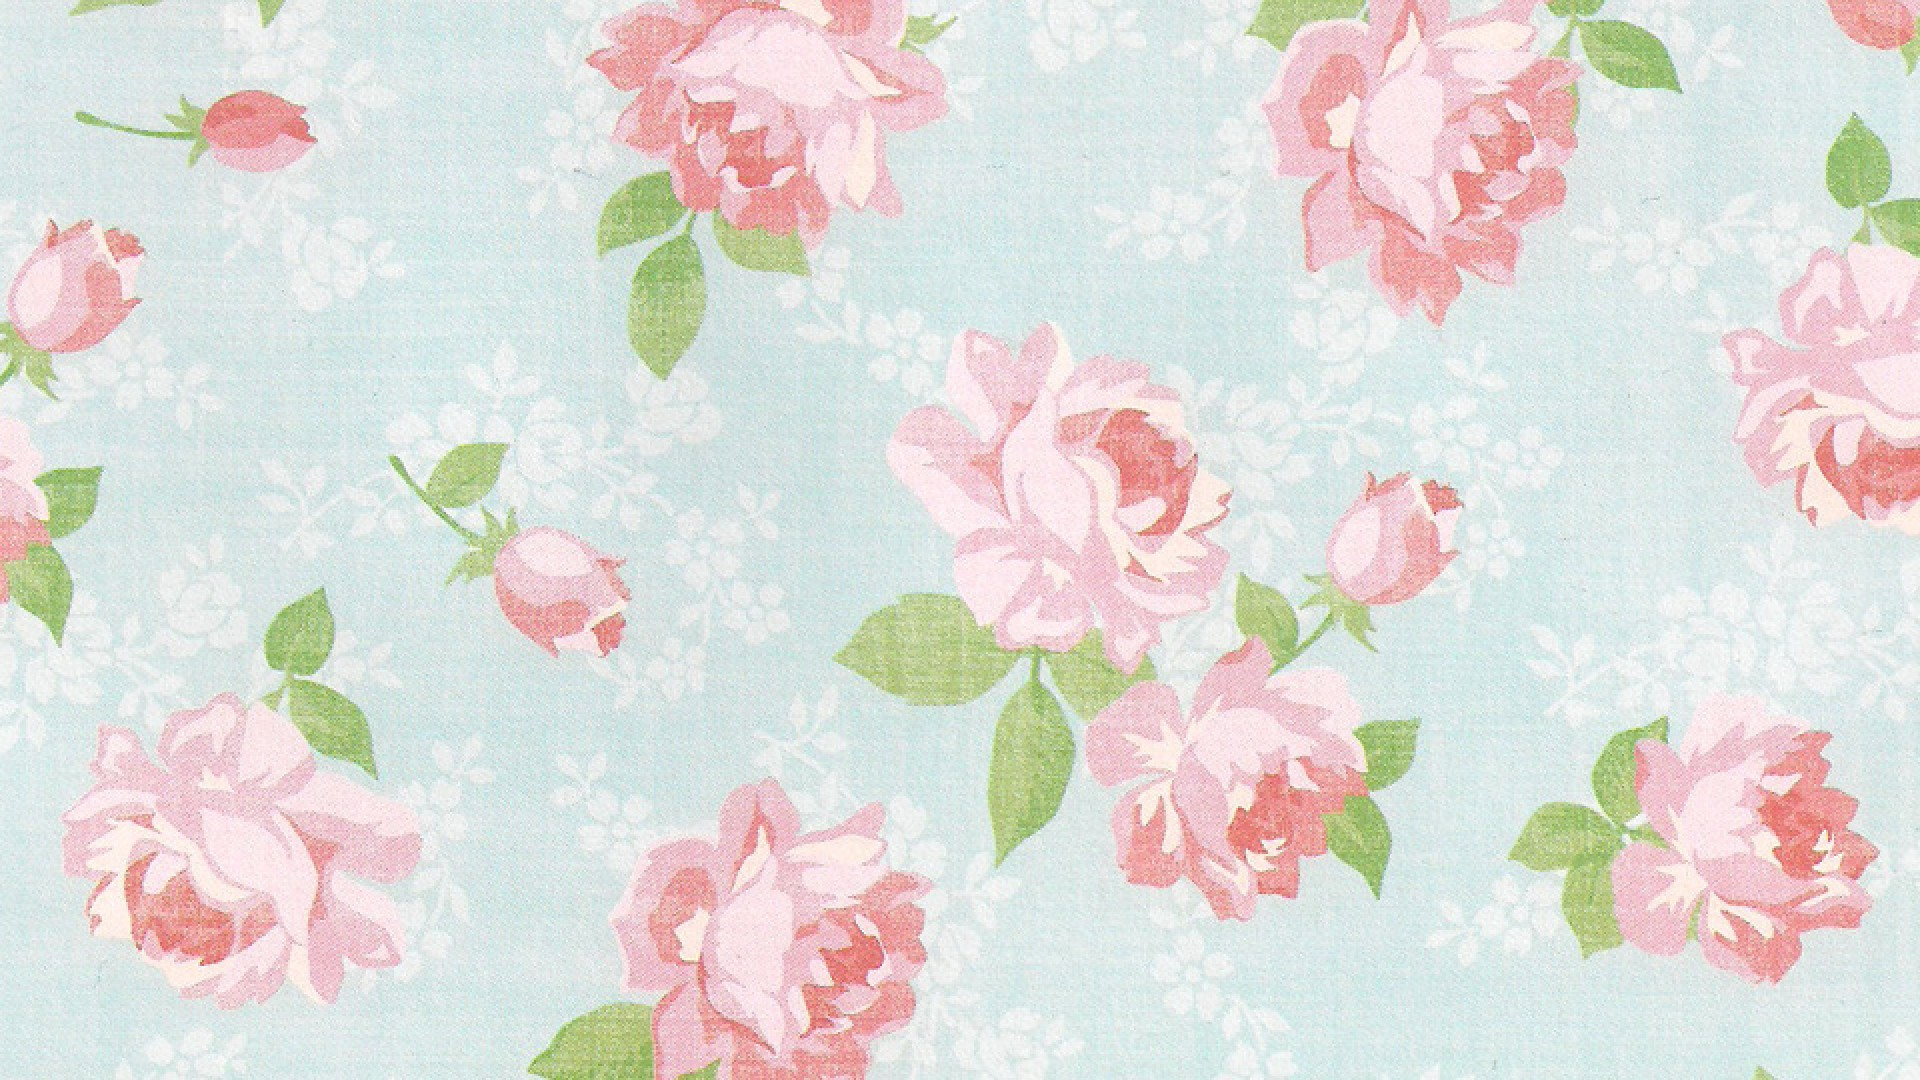 Vintage Flower Wallpaper Tumblr px ~ HDWallSource Floral Wallpapers Tumblr 1920x1080